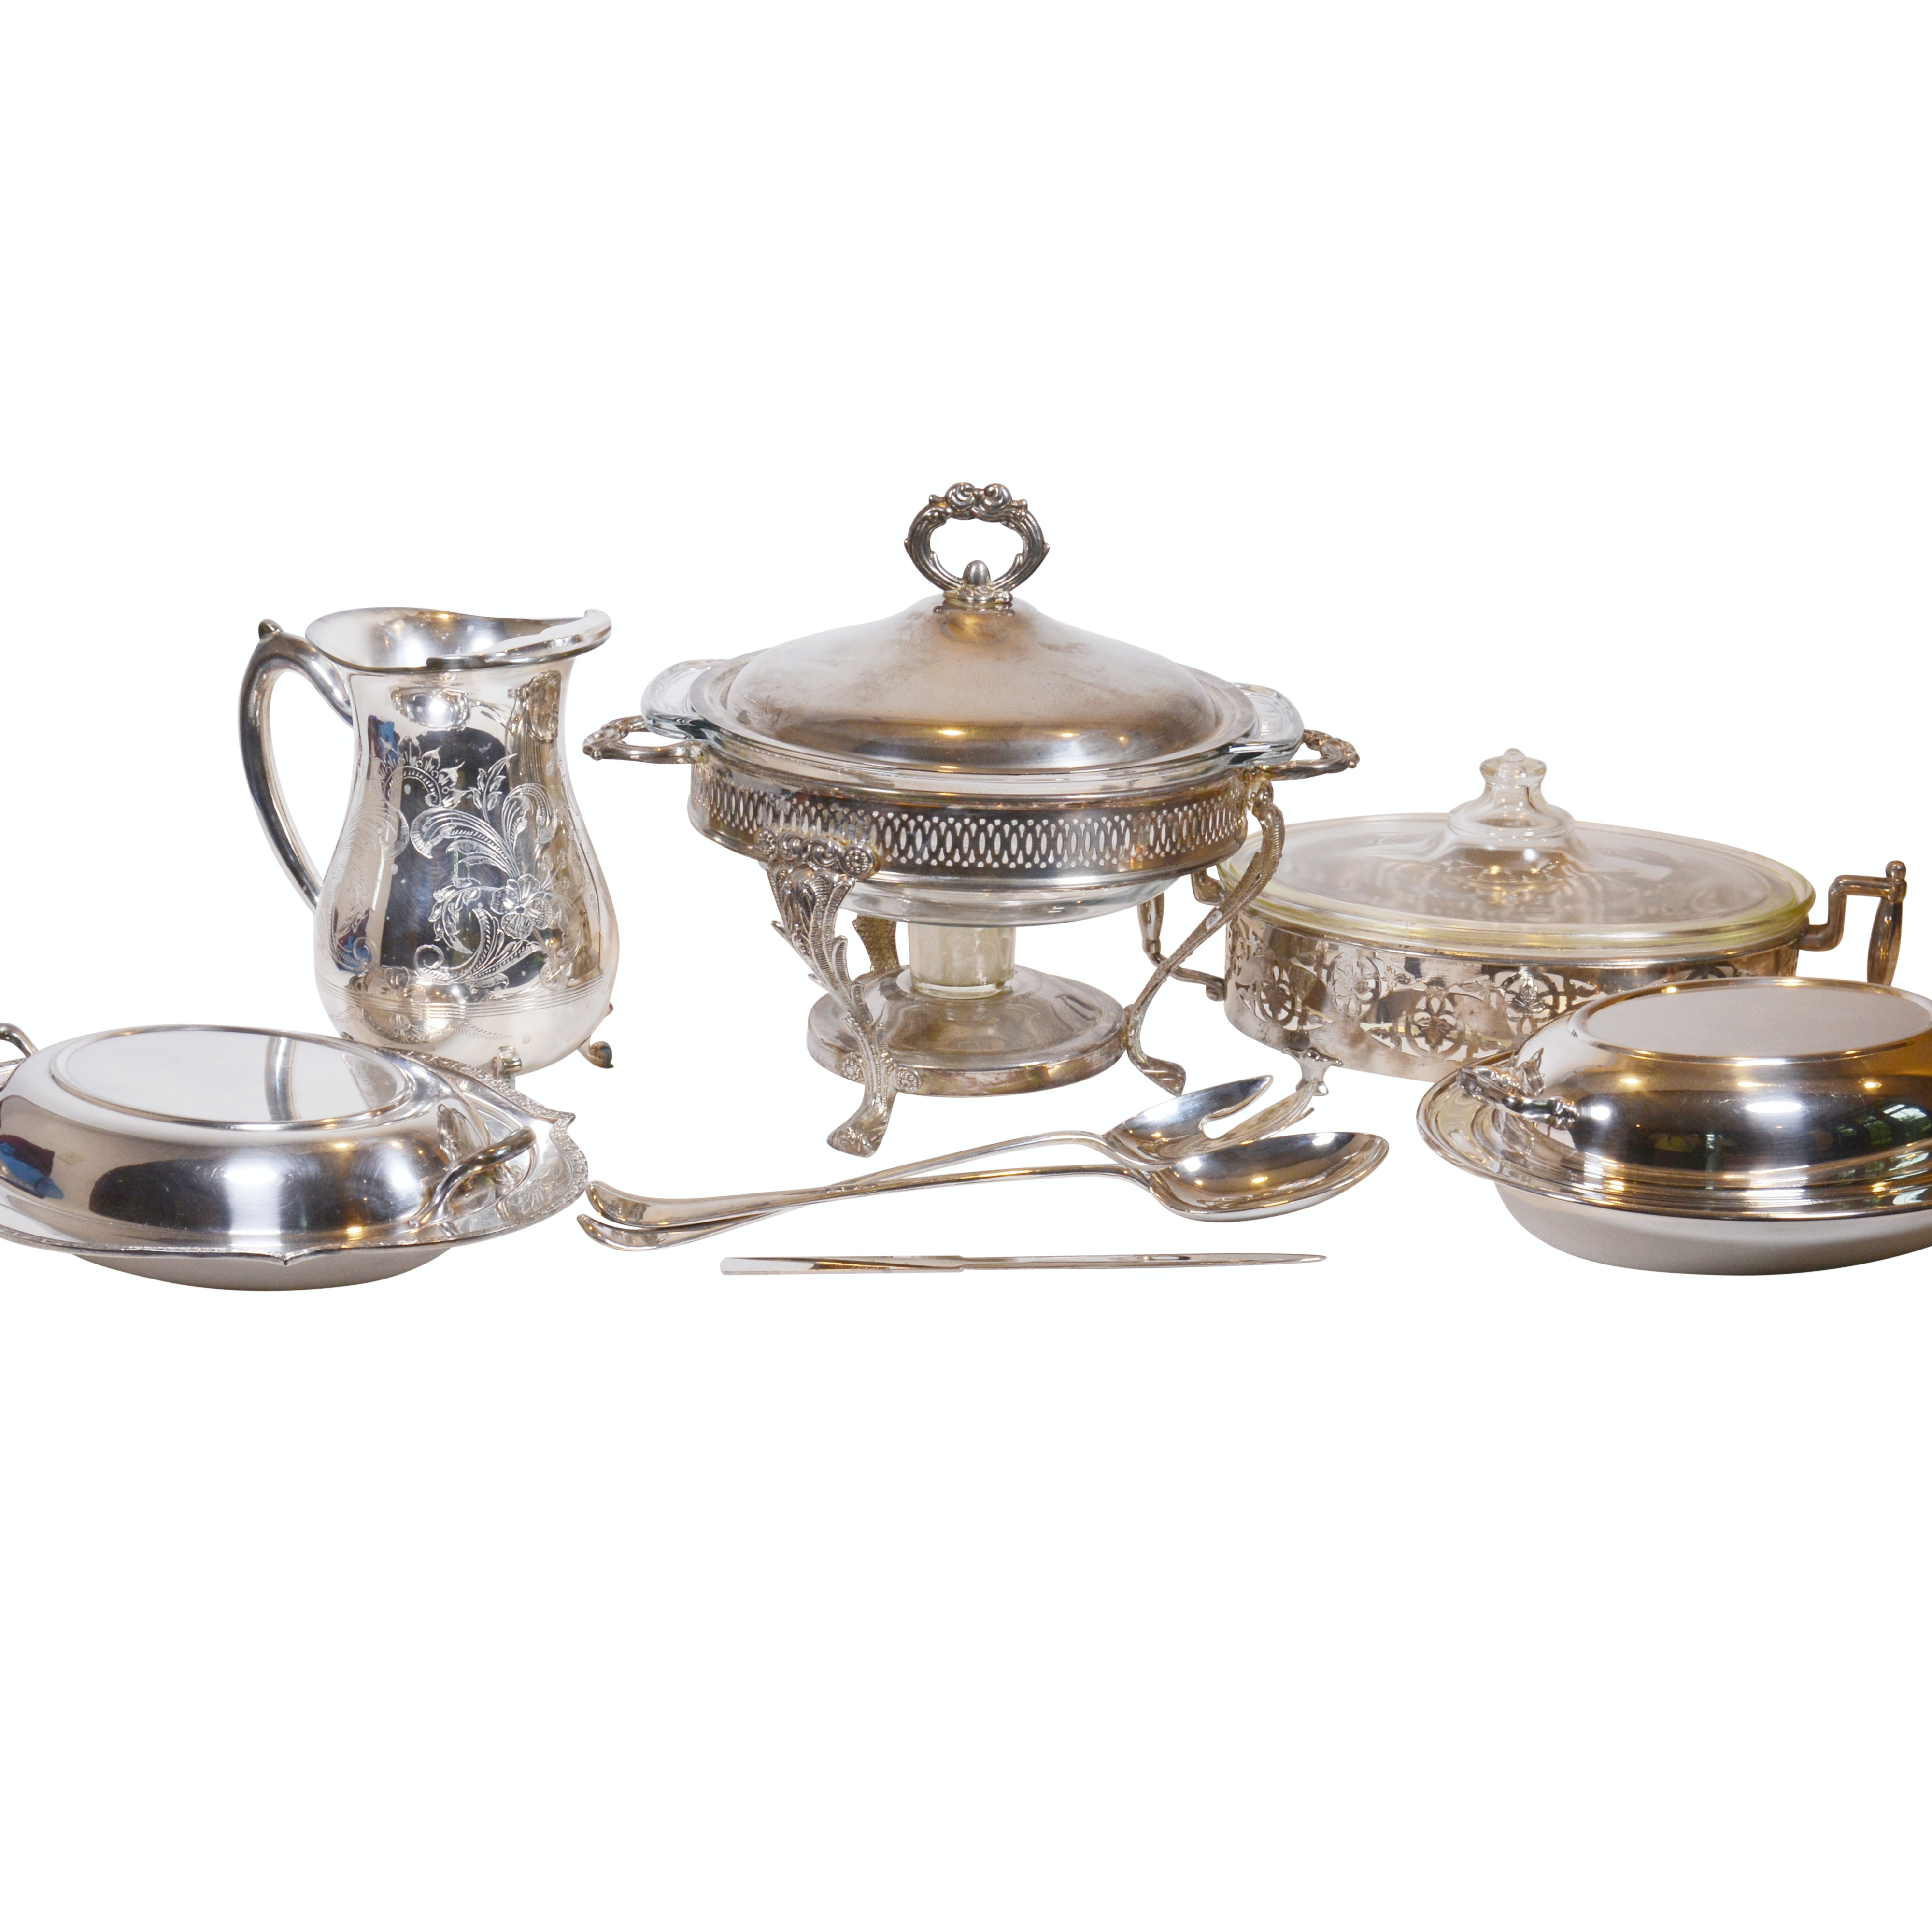 Silver Plate Serveware Including Continental and RH Stearns & Co.